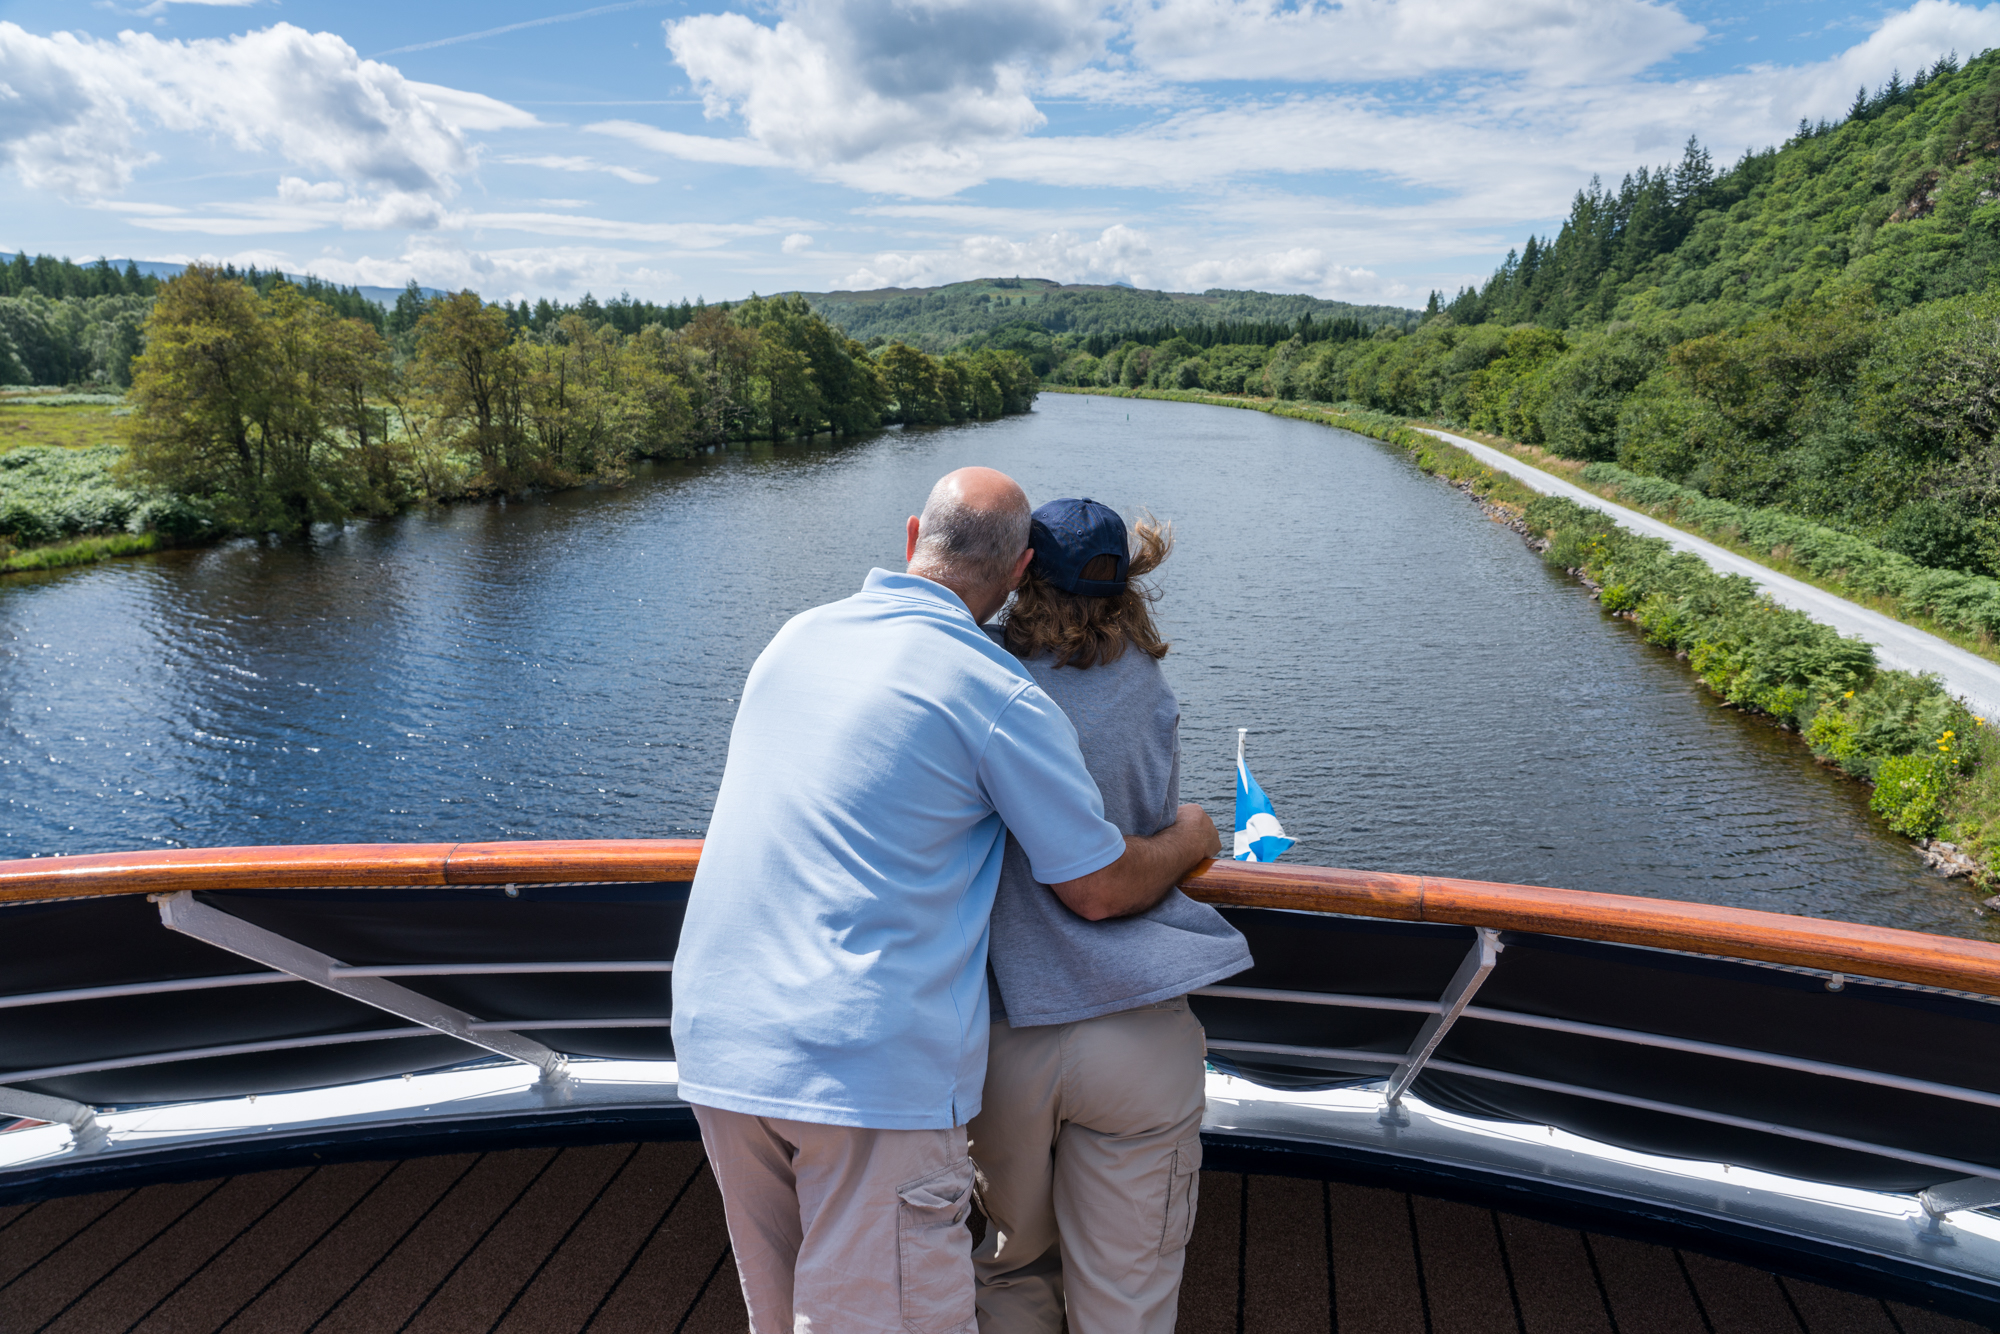 A couple shares a moment while enjoying the view and scenery along The Caledonian Canal from the bow of Lord of the Glens.